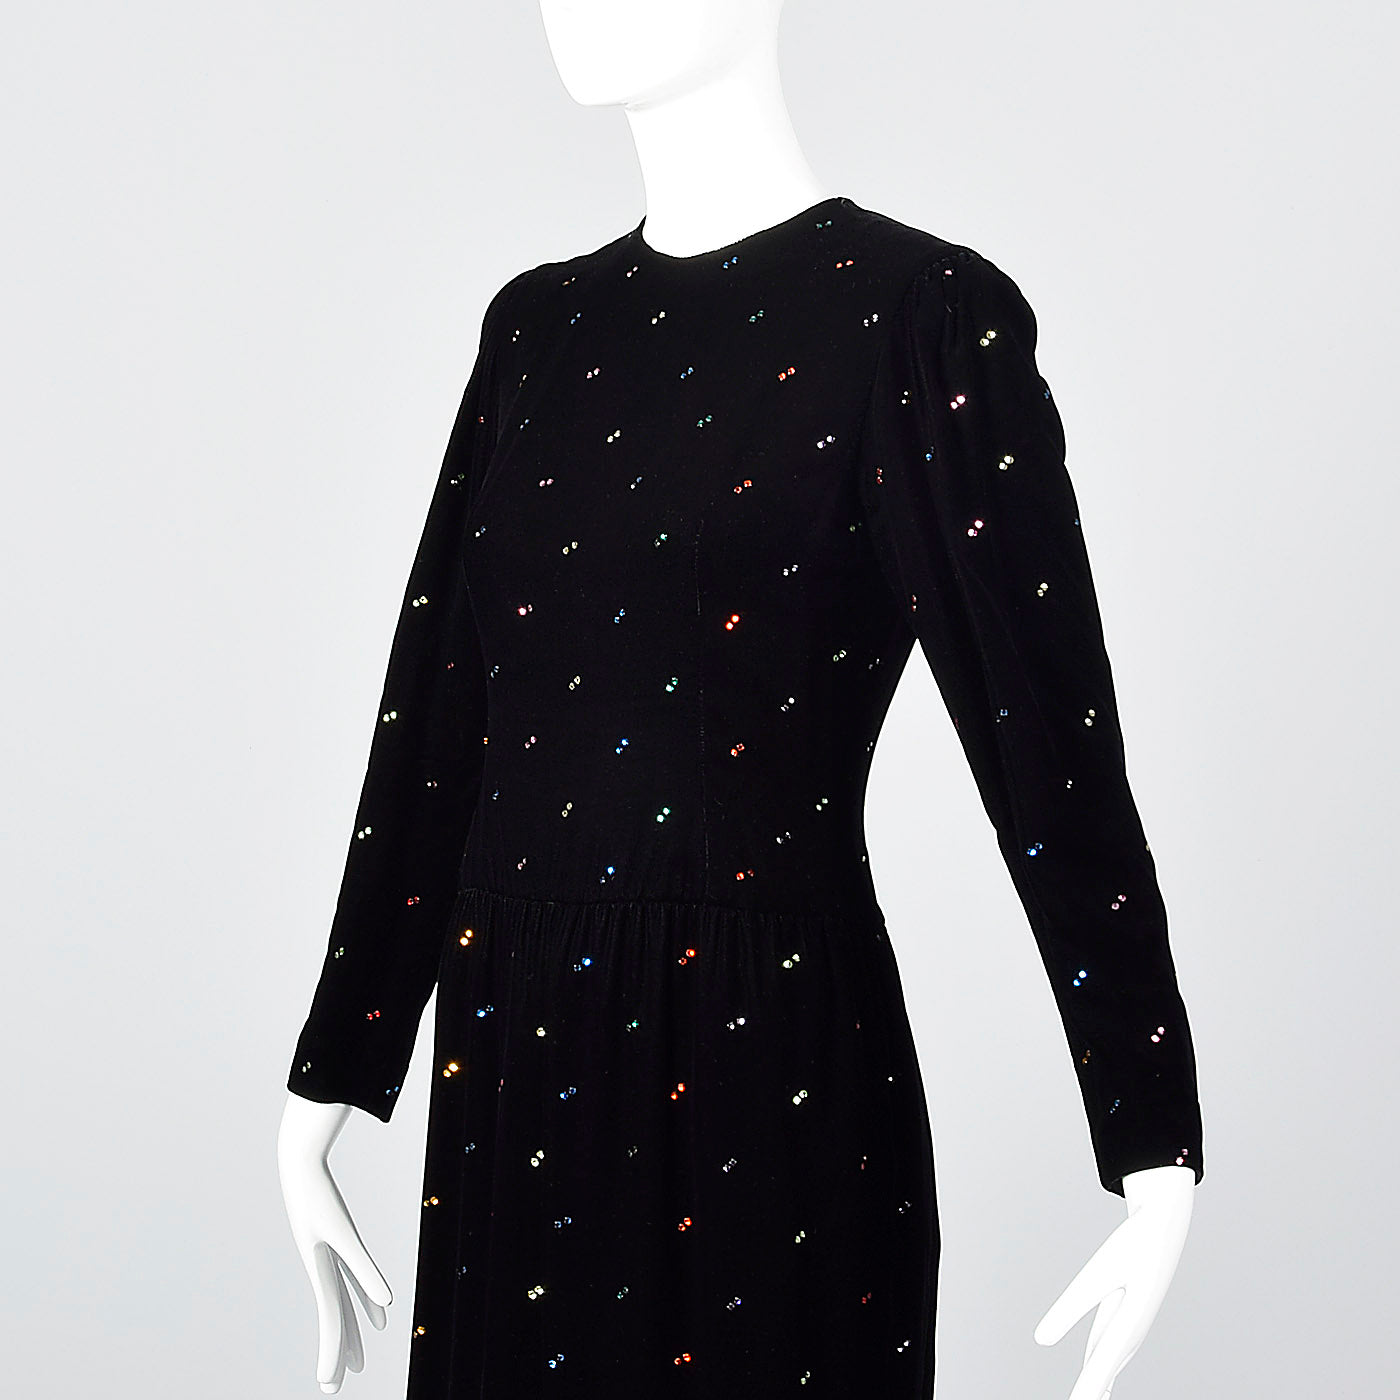 1980s Oscar de la Renta Black Velvet Dress with Rainbow Rhinestones